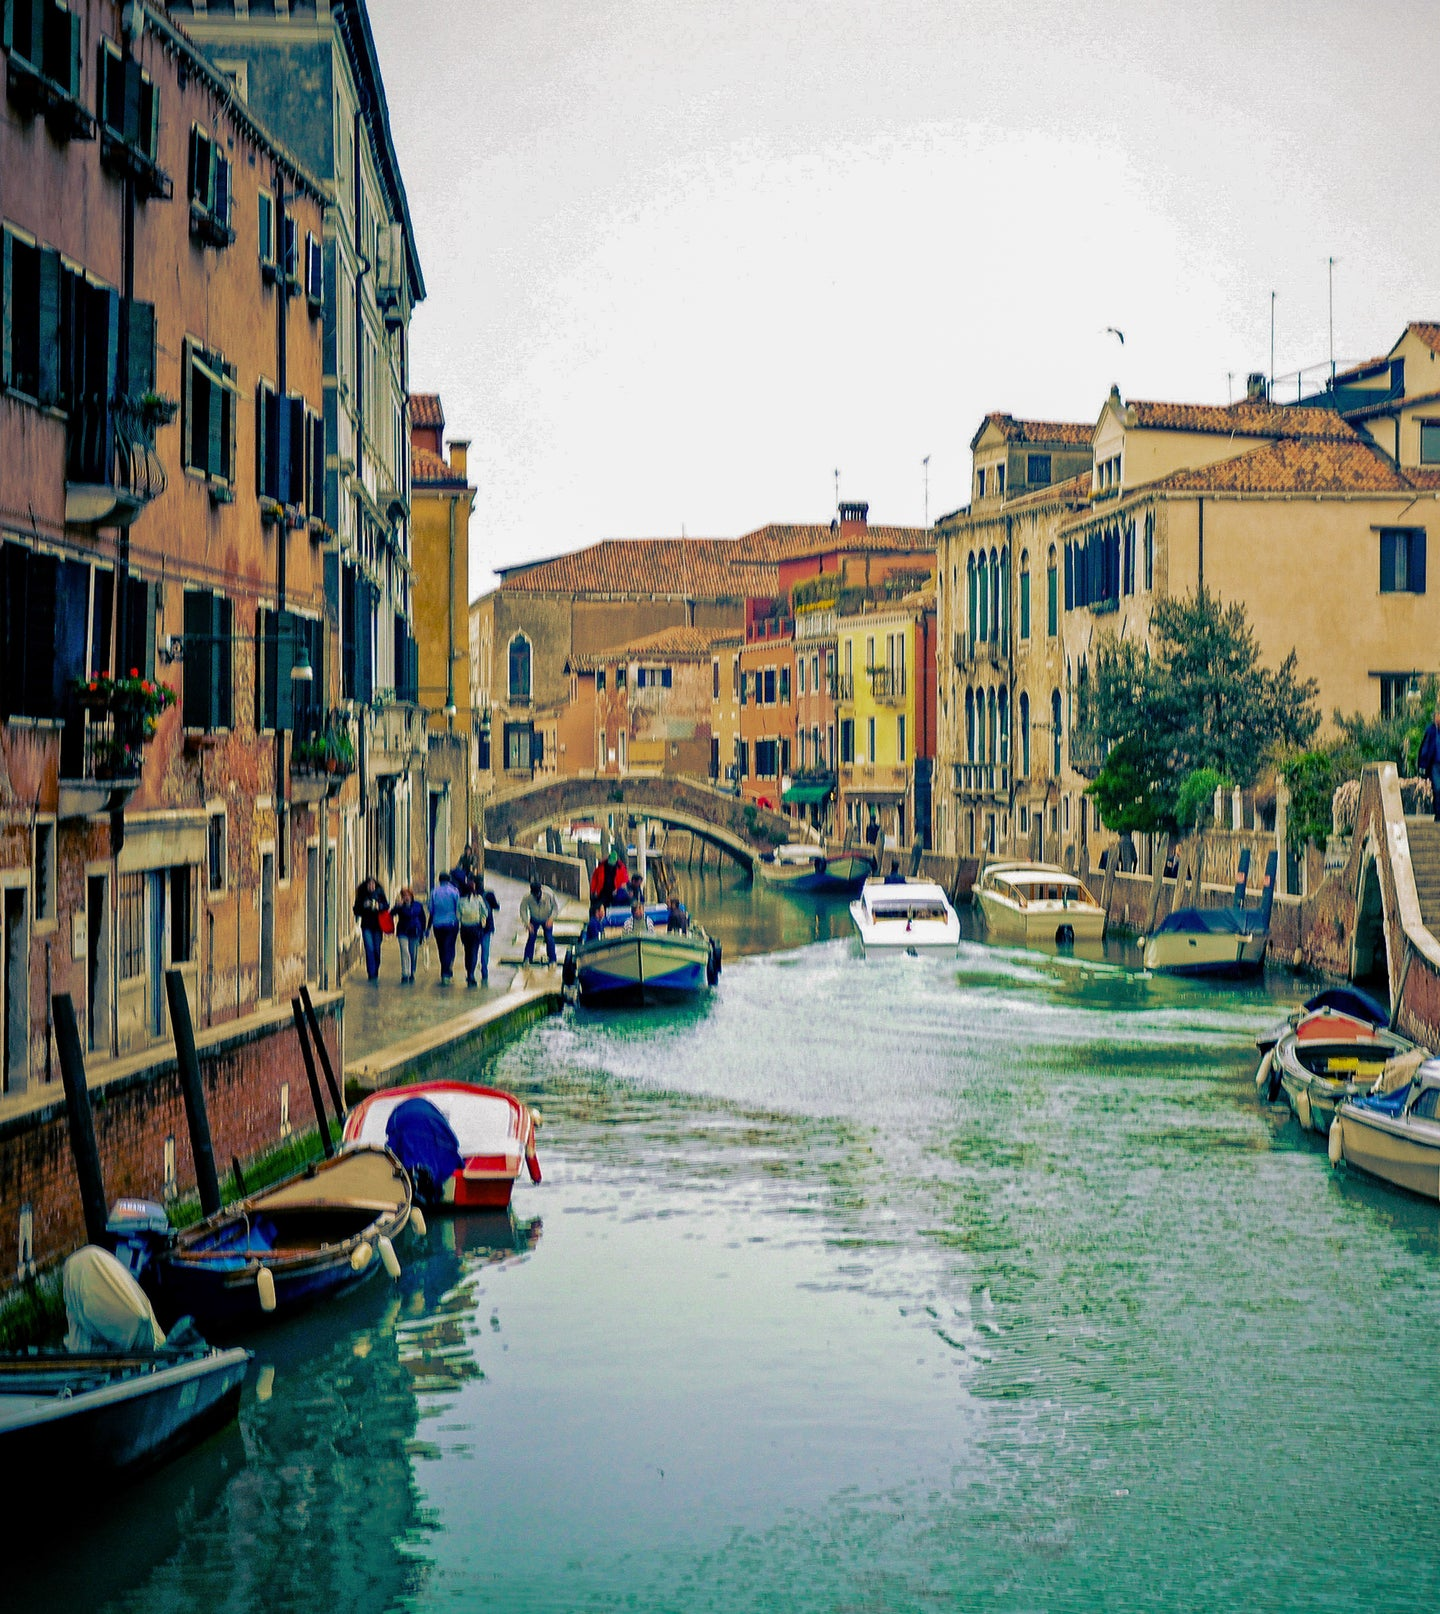 Venice waterways 4 - Most Famous Place - Lovely Place - Gorgeous View - People In Italy - Tracy McCrackin Photography